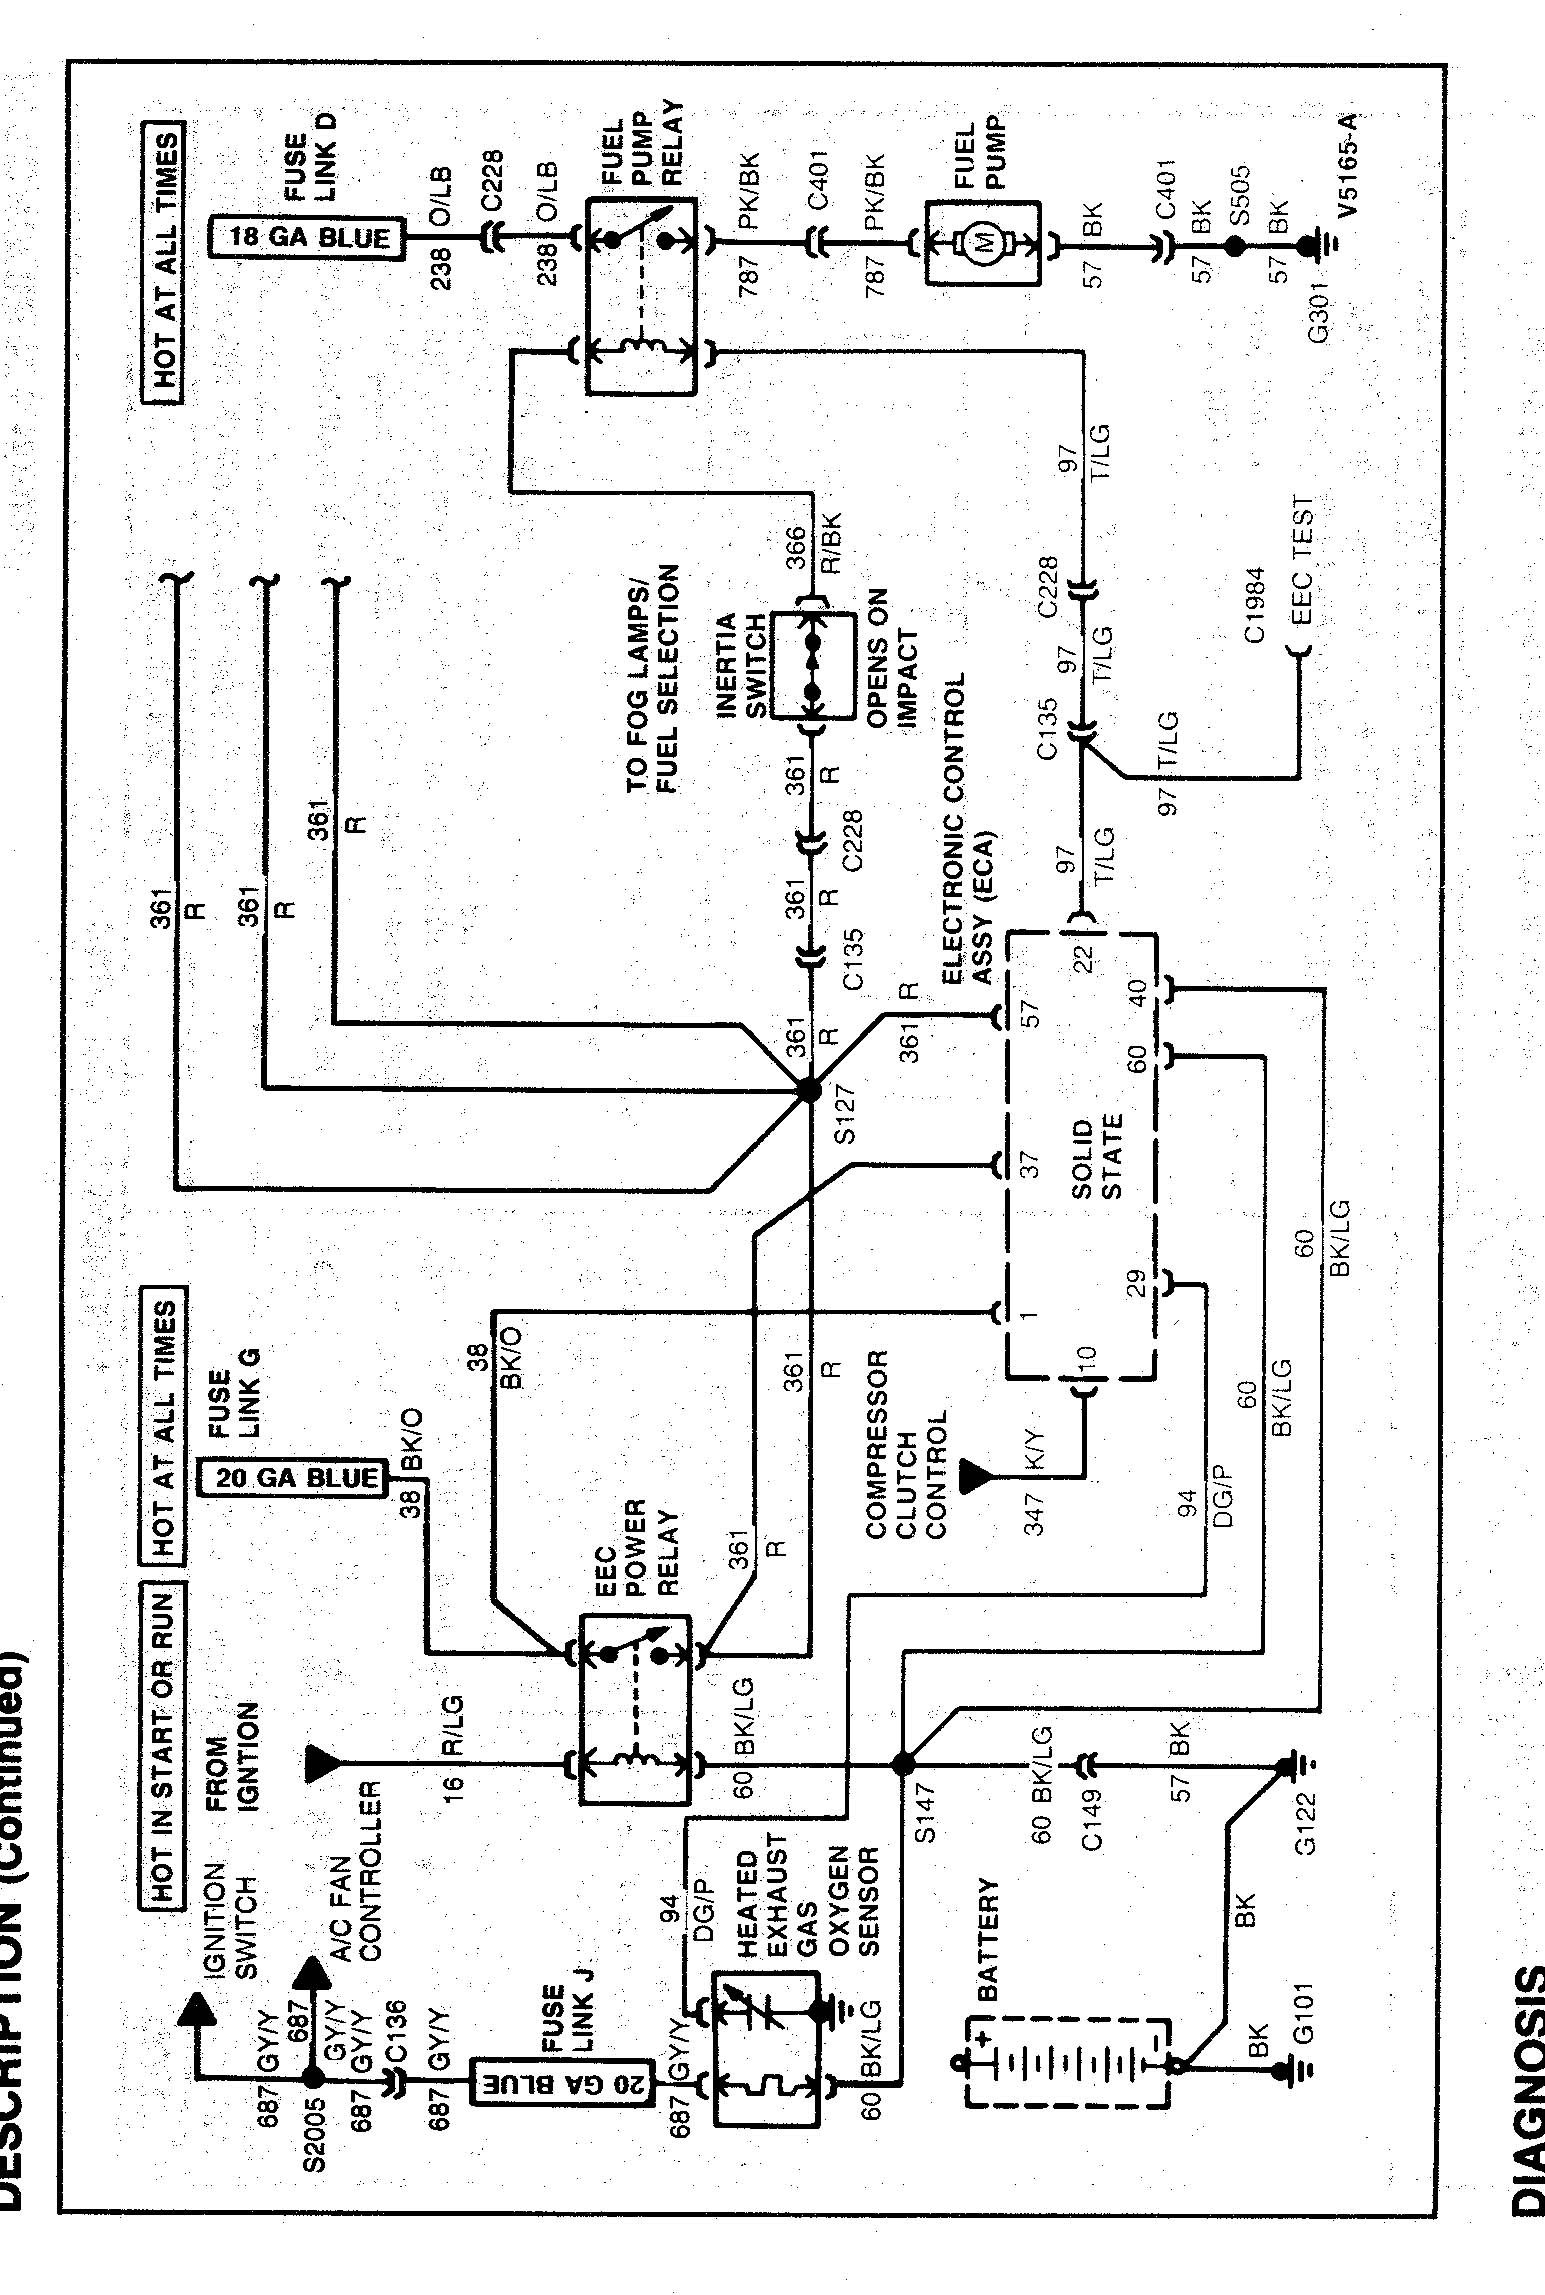 1997 ford f150 trailer wiring diagram remote start eec relay wire - mustangforums.com